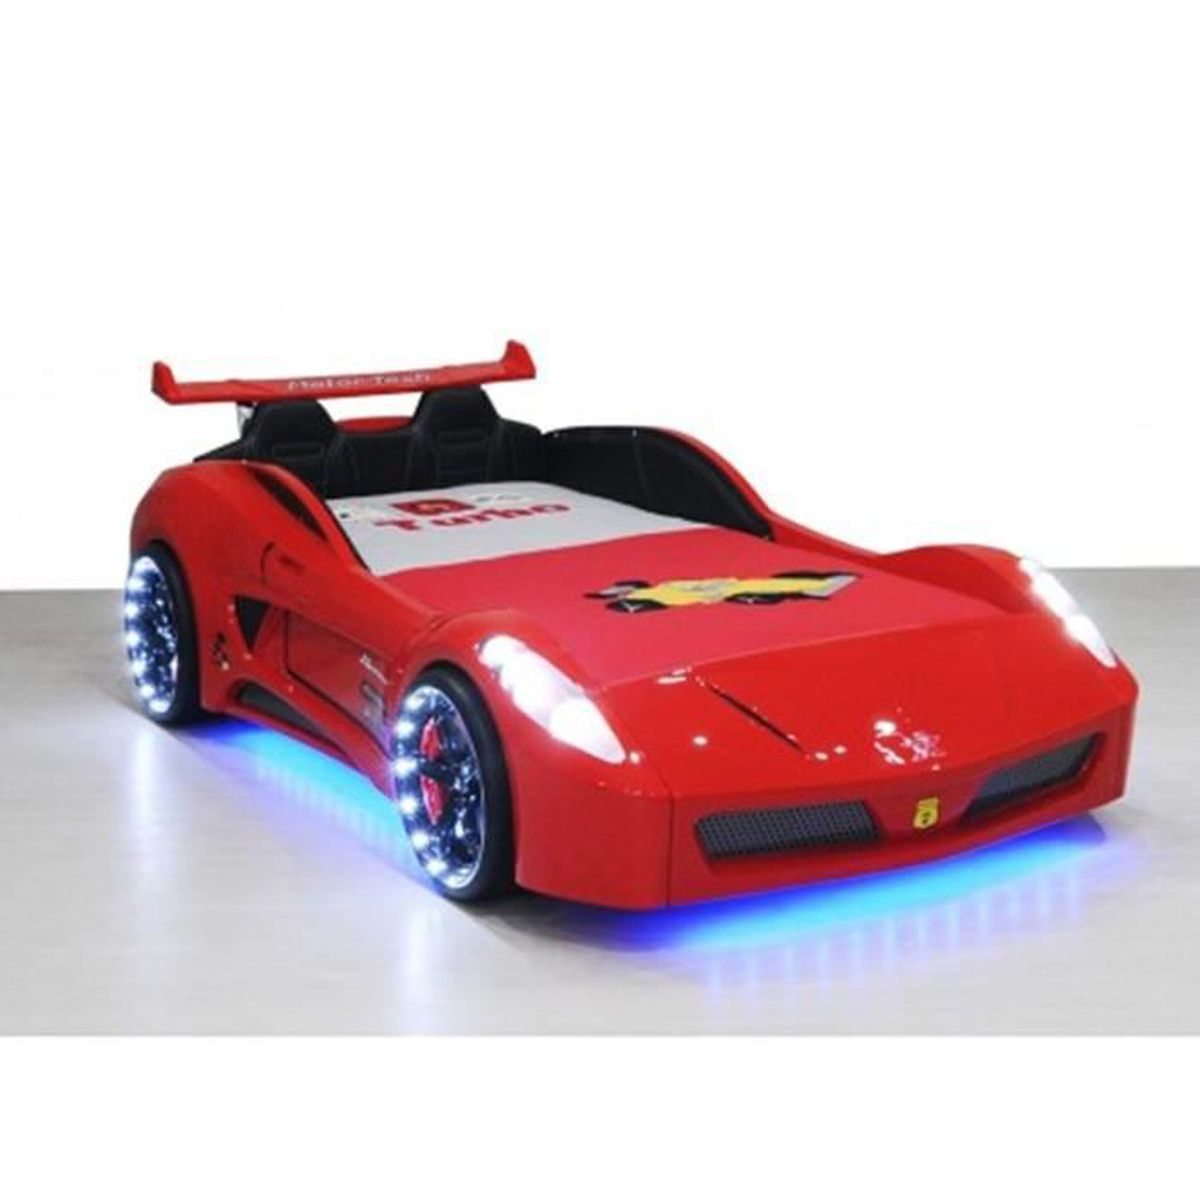 lit voiture enfant v7 avec led rouge ferrari achat. Black Bedroom Furniture Sets. Home Design Ideas